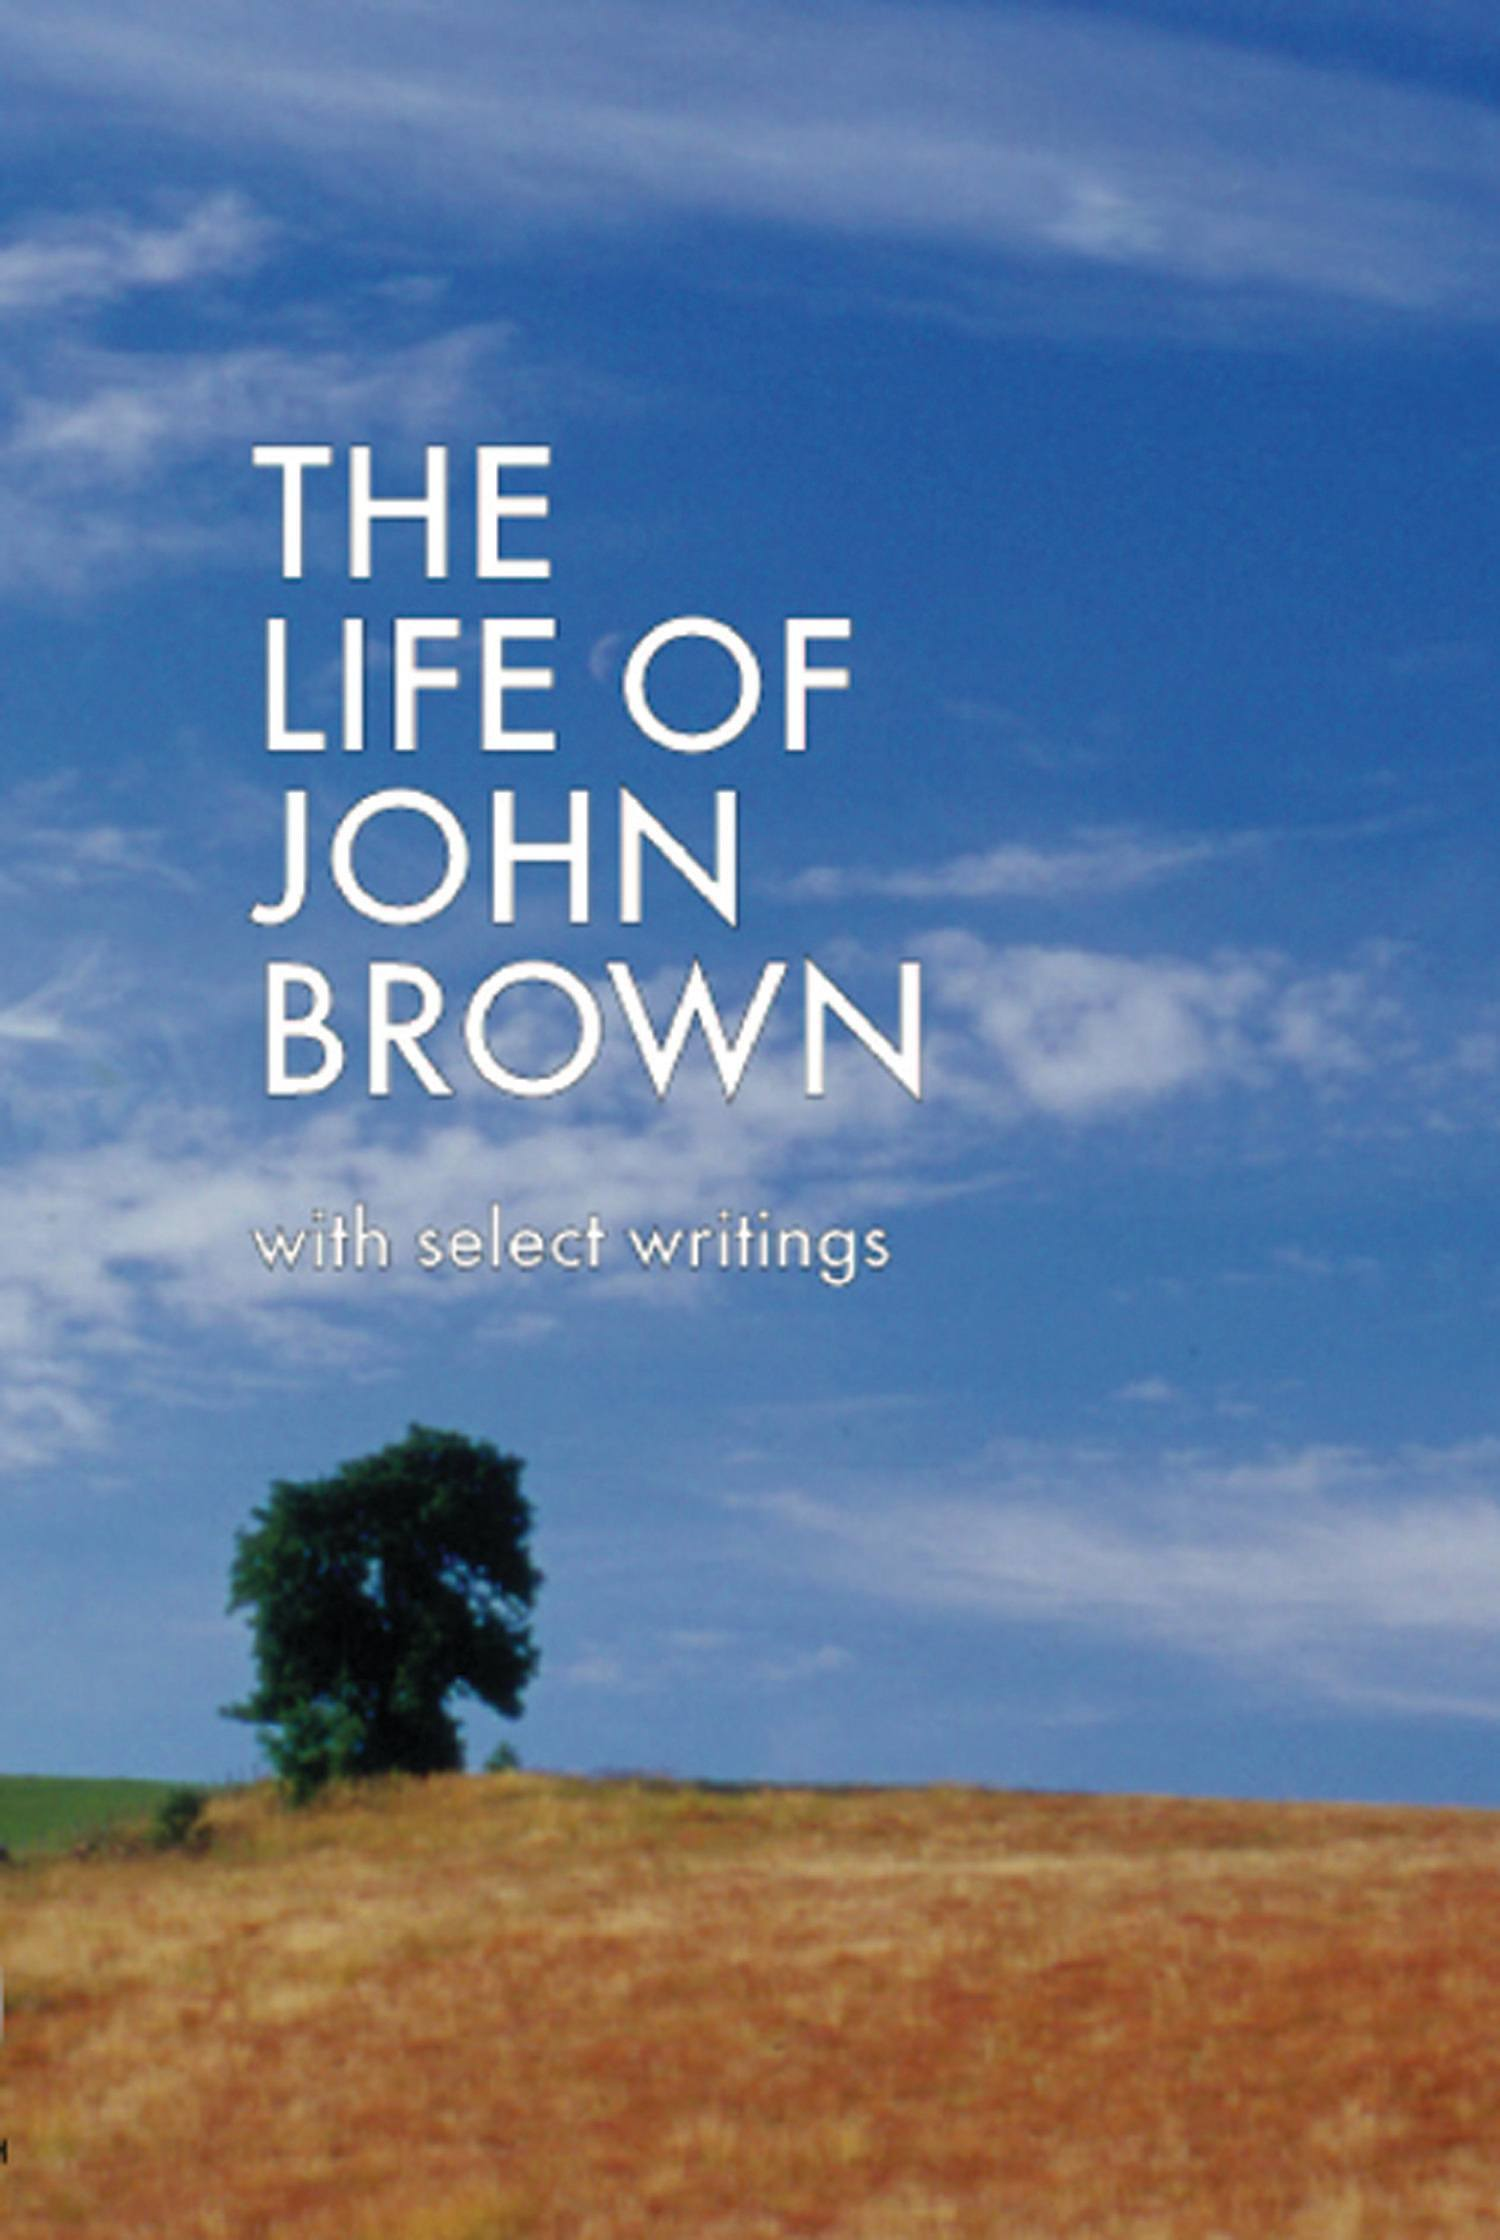 Life of John Brown